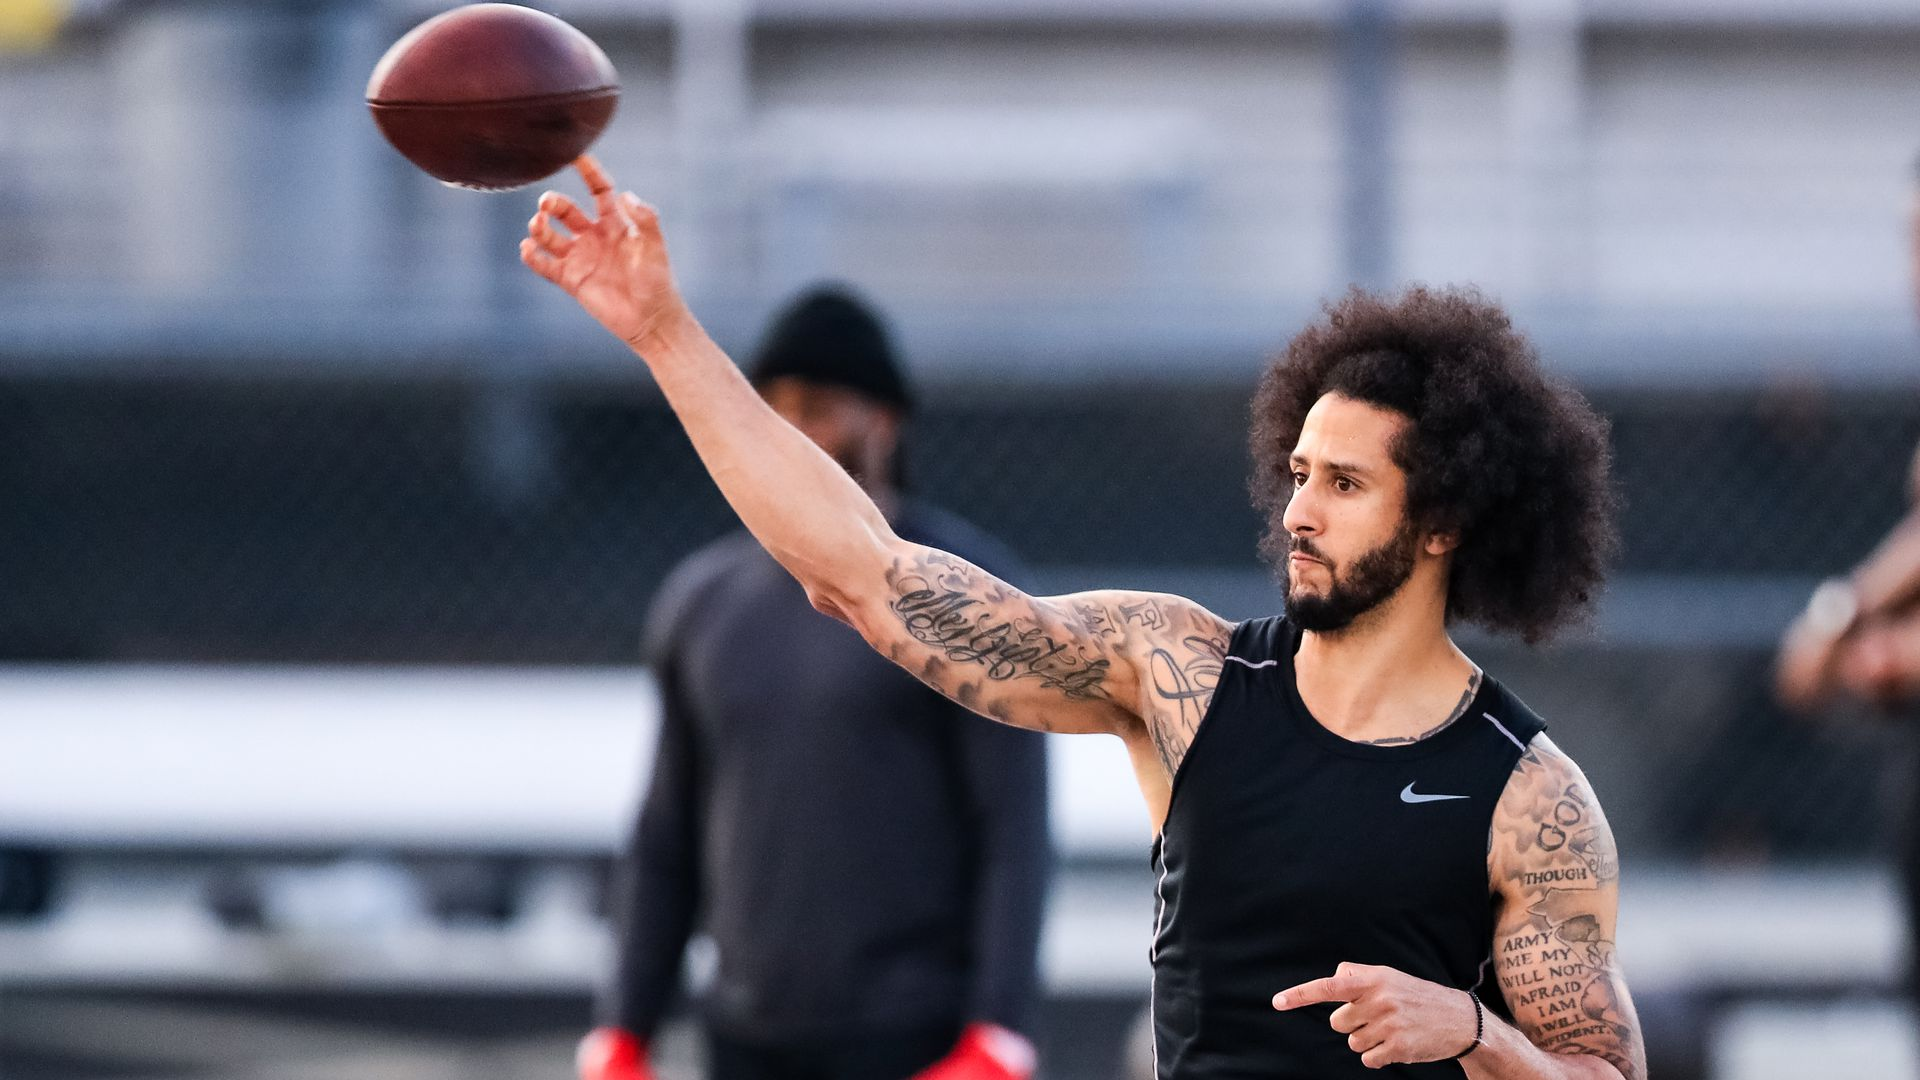 In this image, Colin Kaepernick tosses a football on a football field